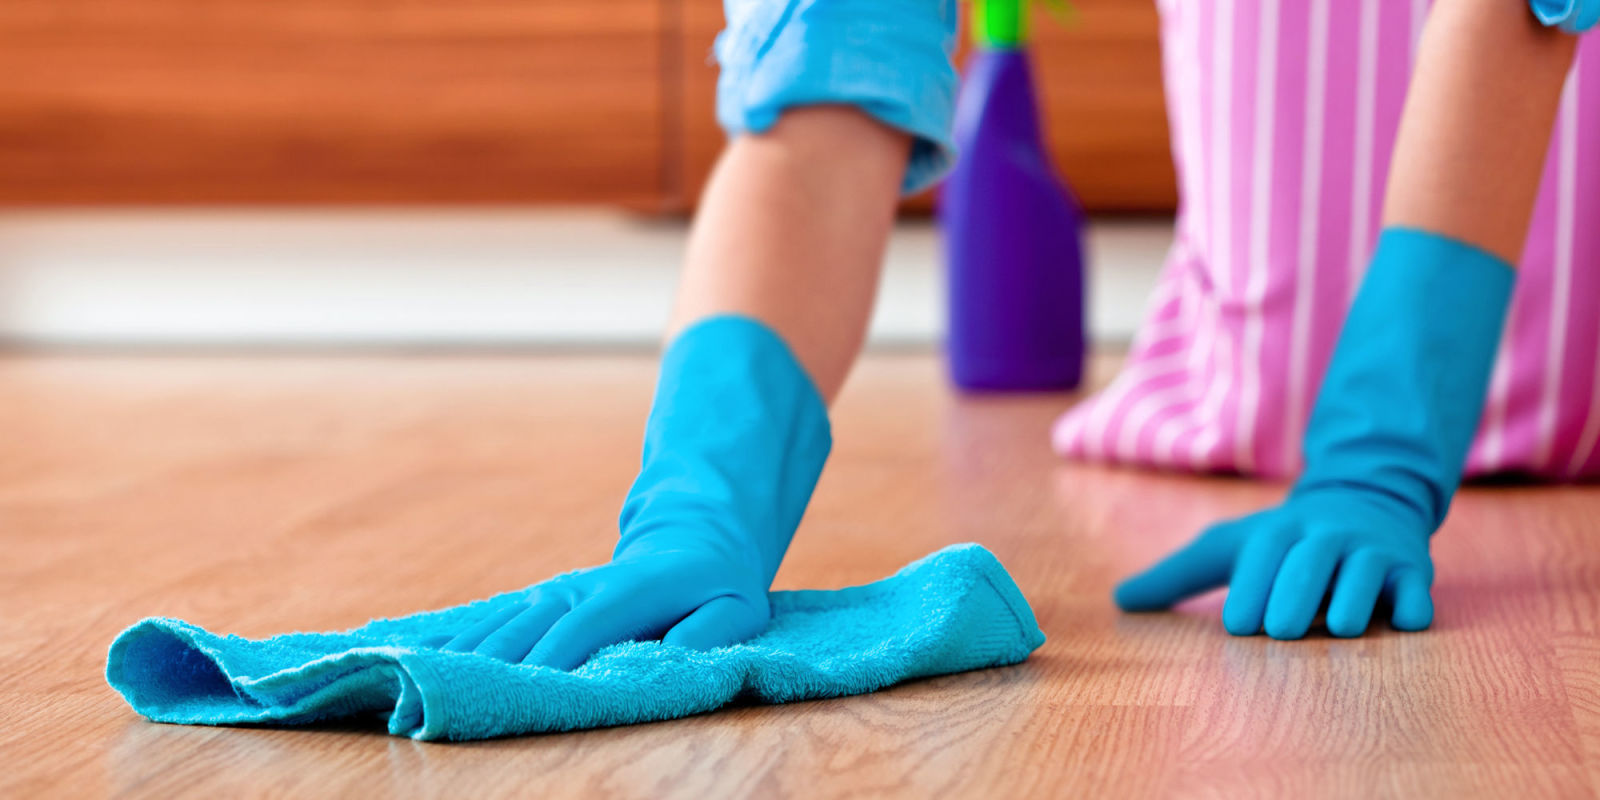 home organizing and cleaning tips how to organize and clean your